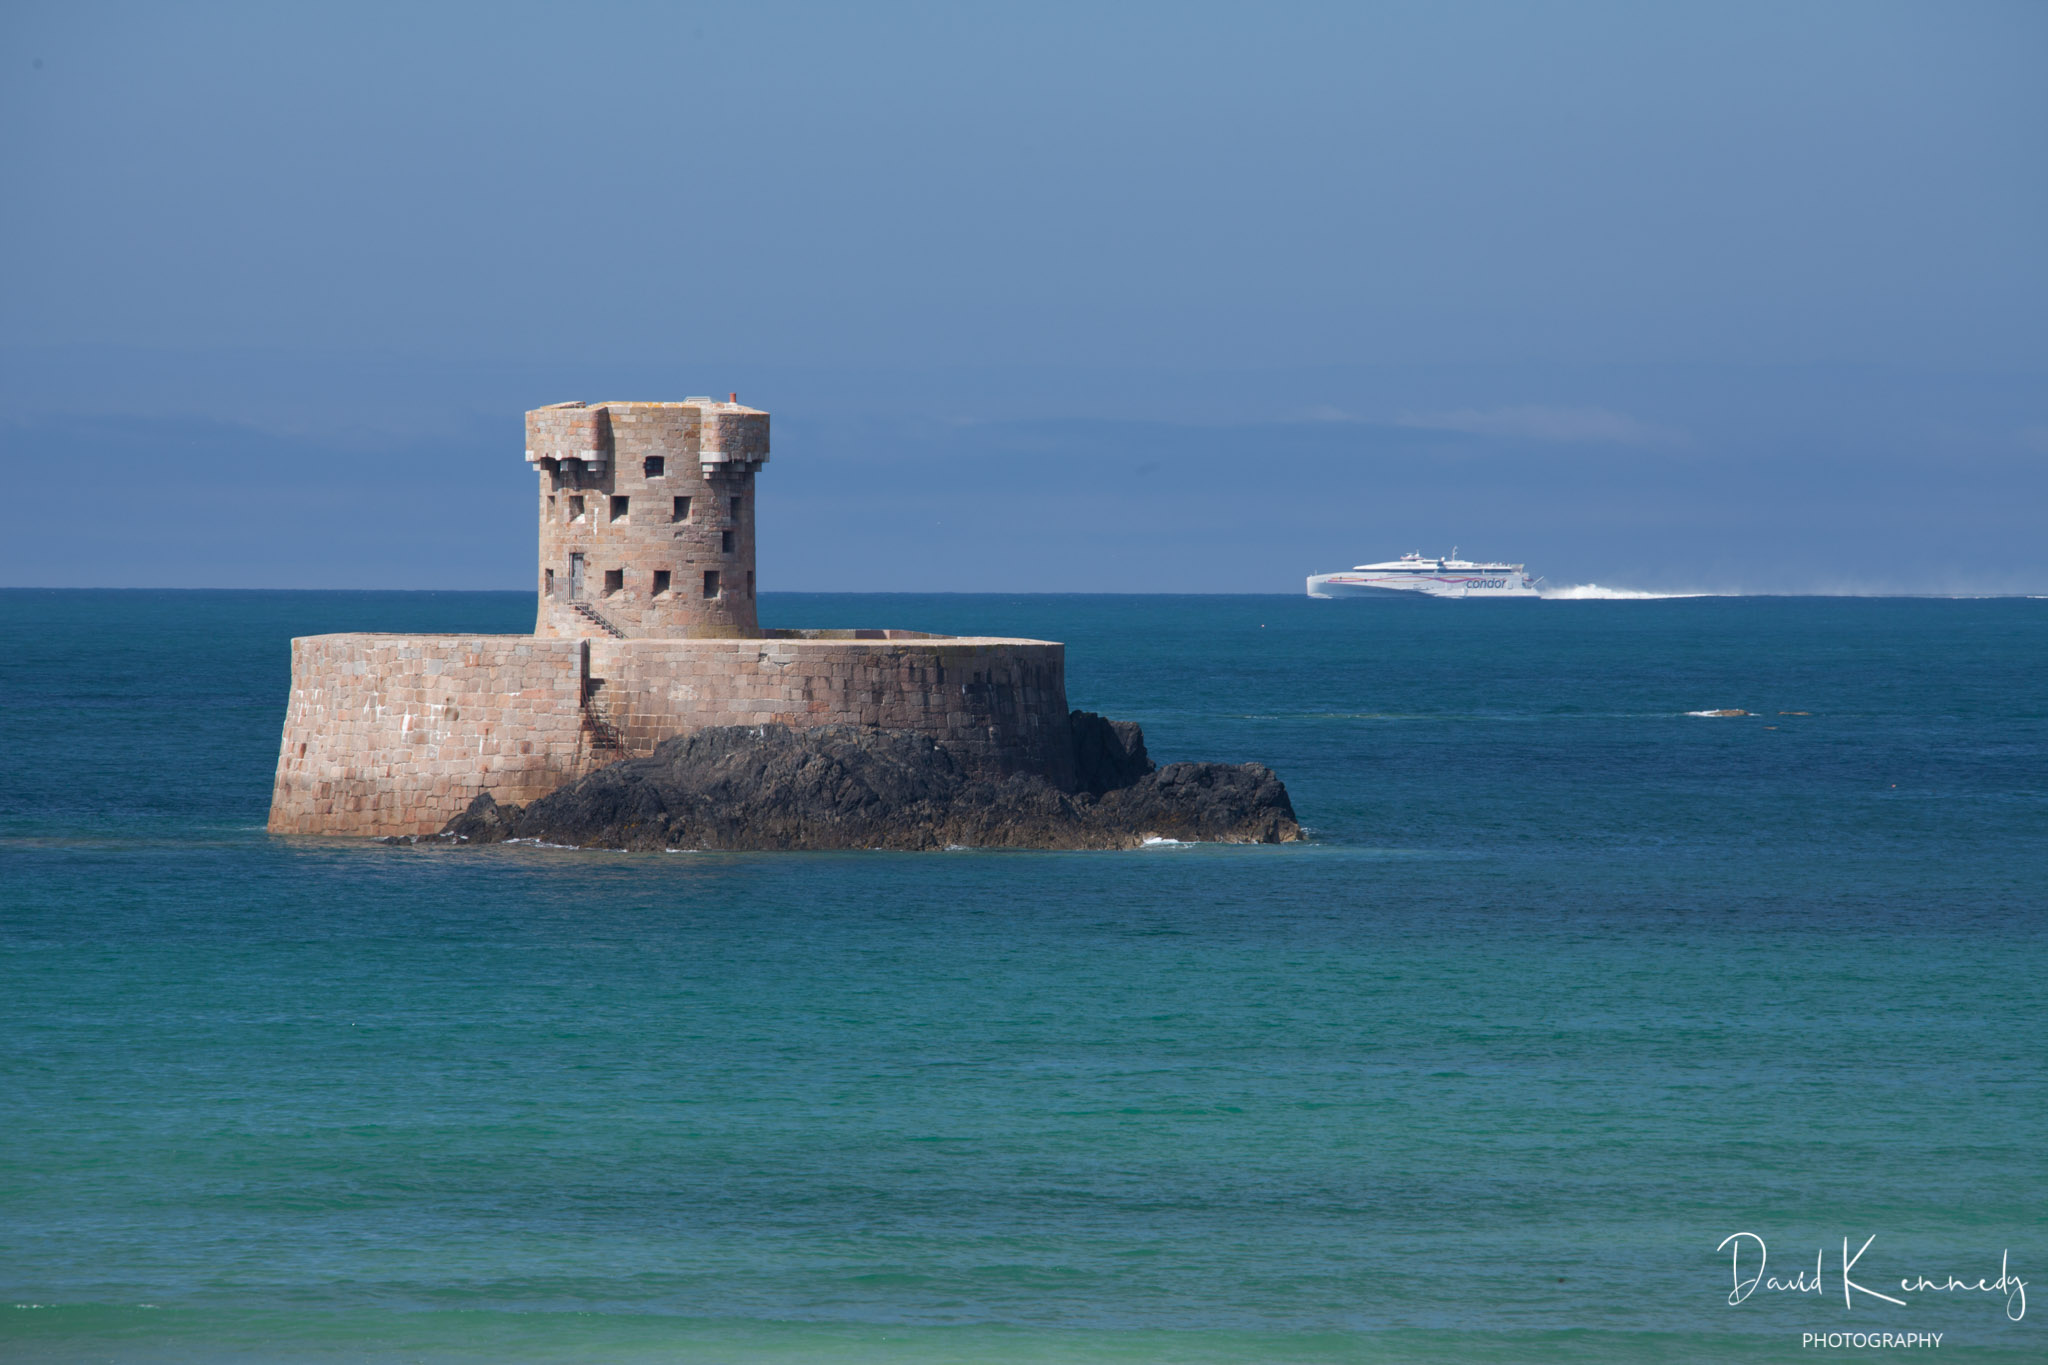 The fast ferry from Poole passing behind Le Rocco Tower and St Ouen's on the way to Jersey